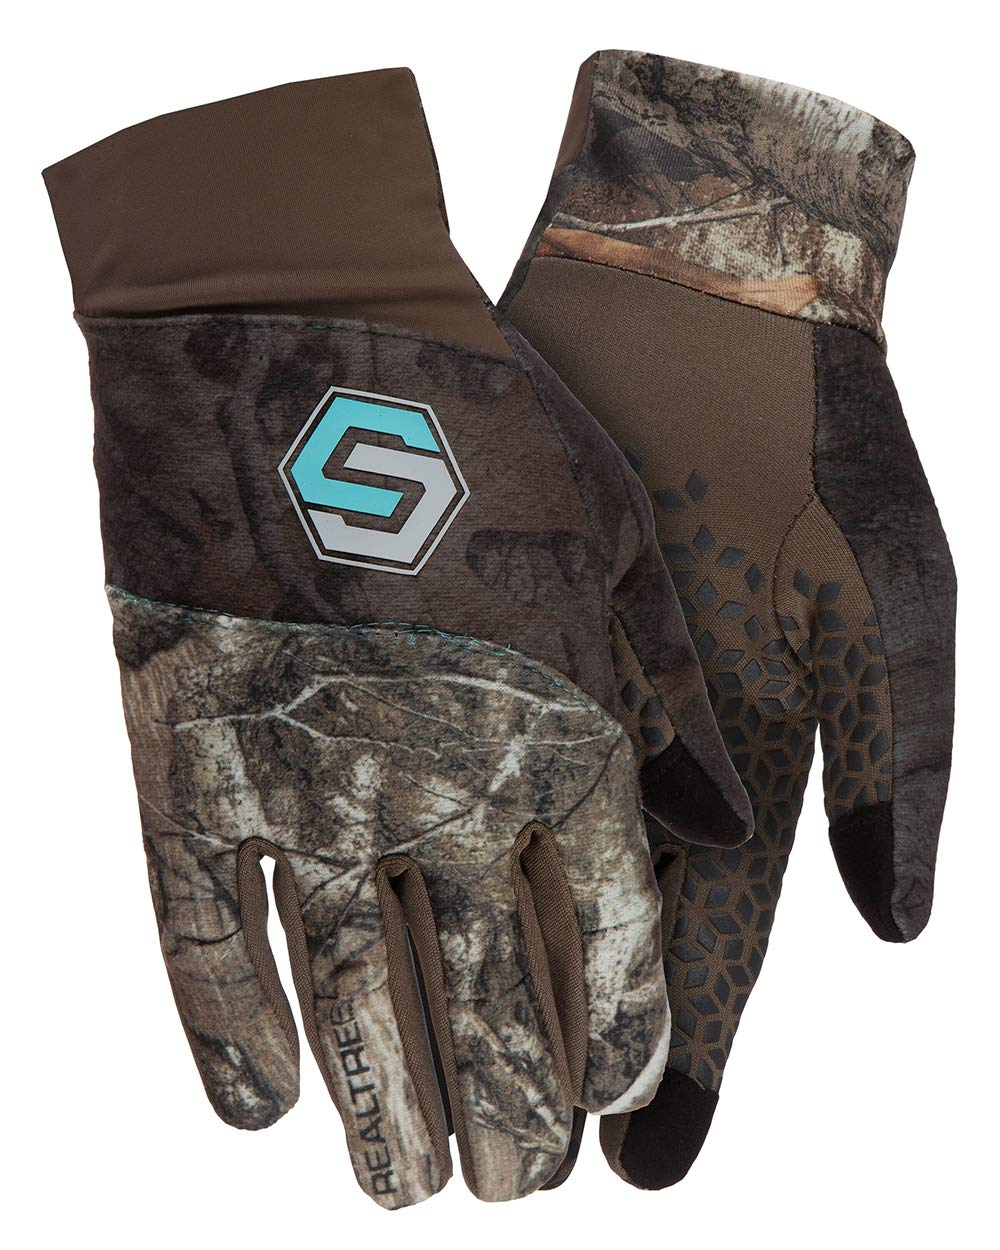 ScentLok Womens Mid Weight Glove (Realtree Edge, Large/X-Large) by ScentLok